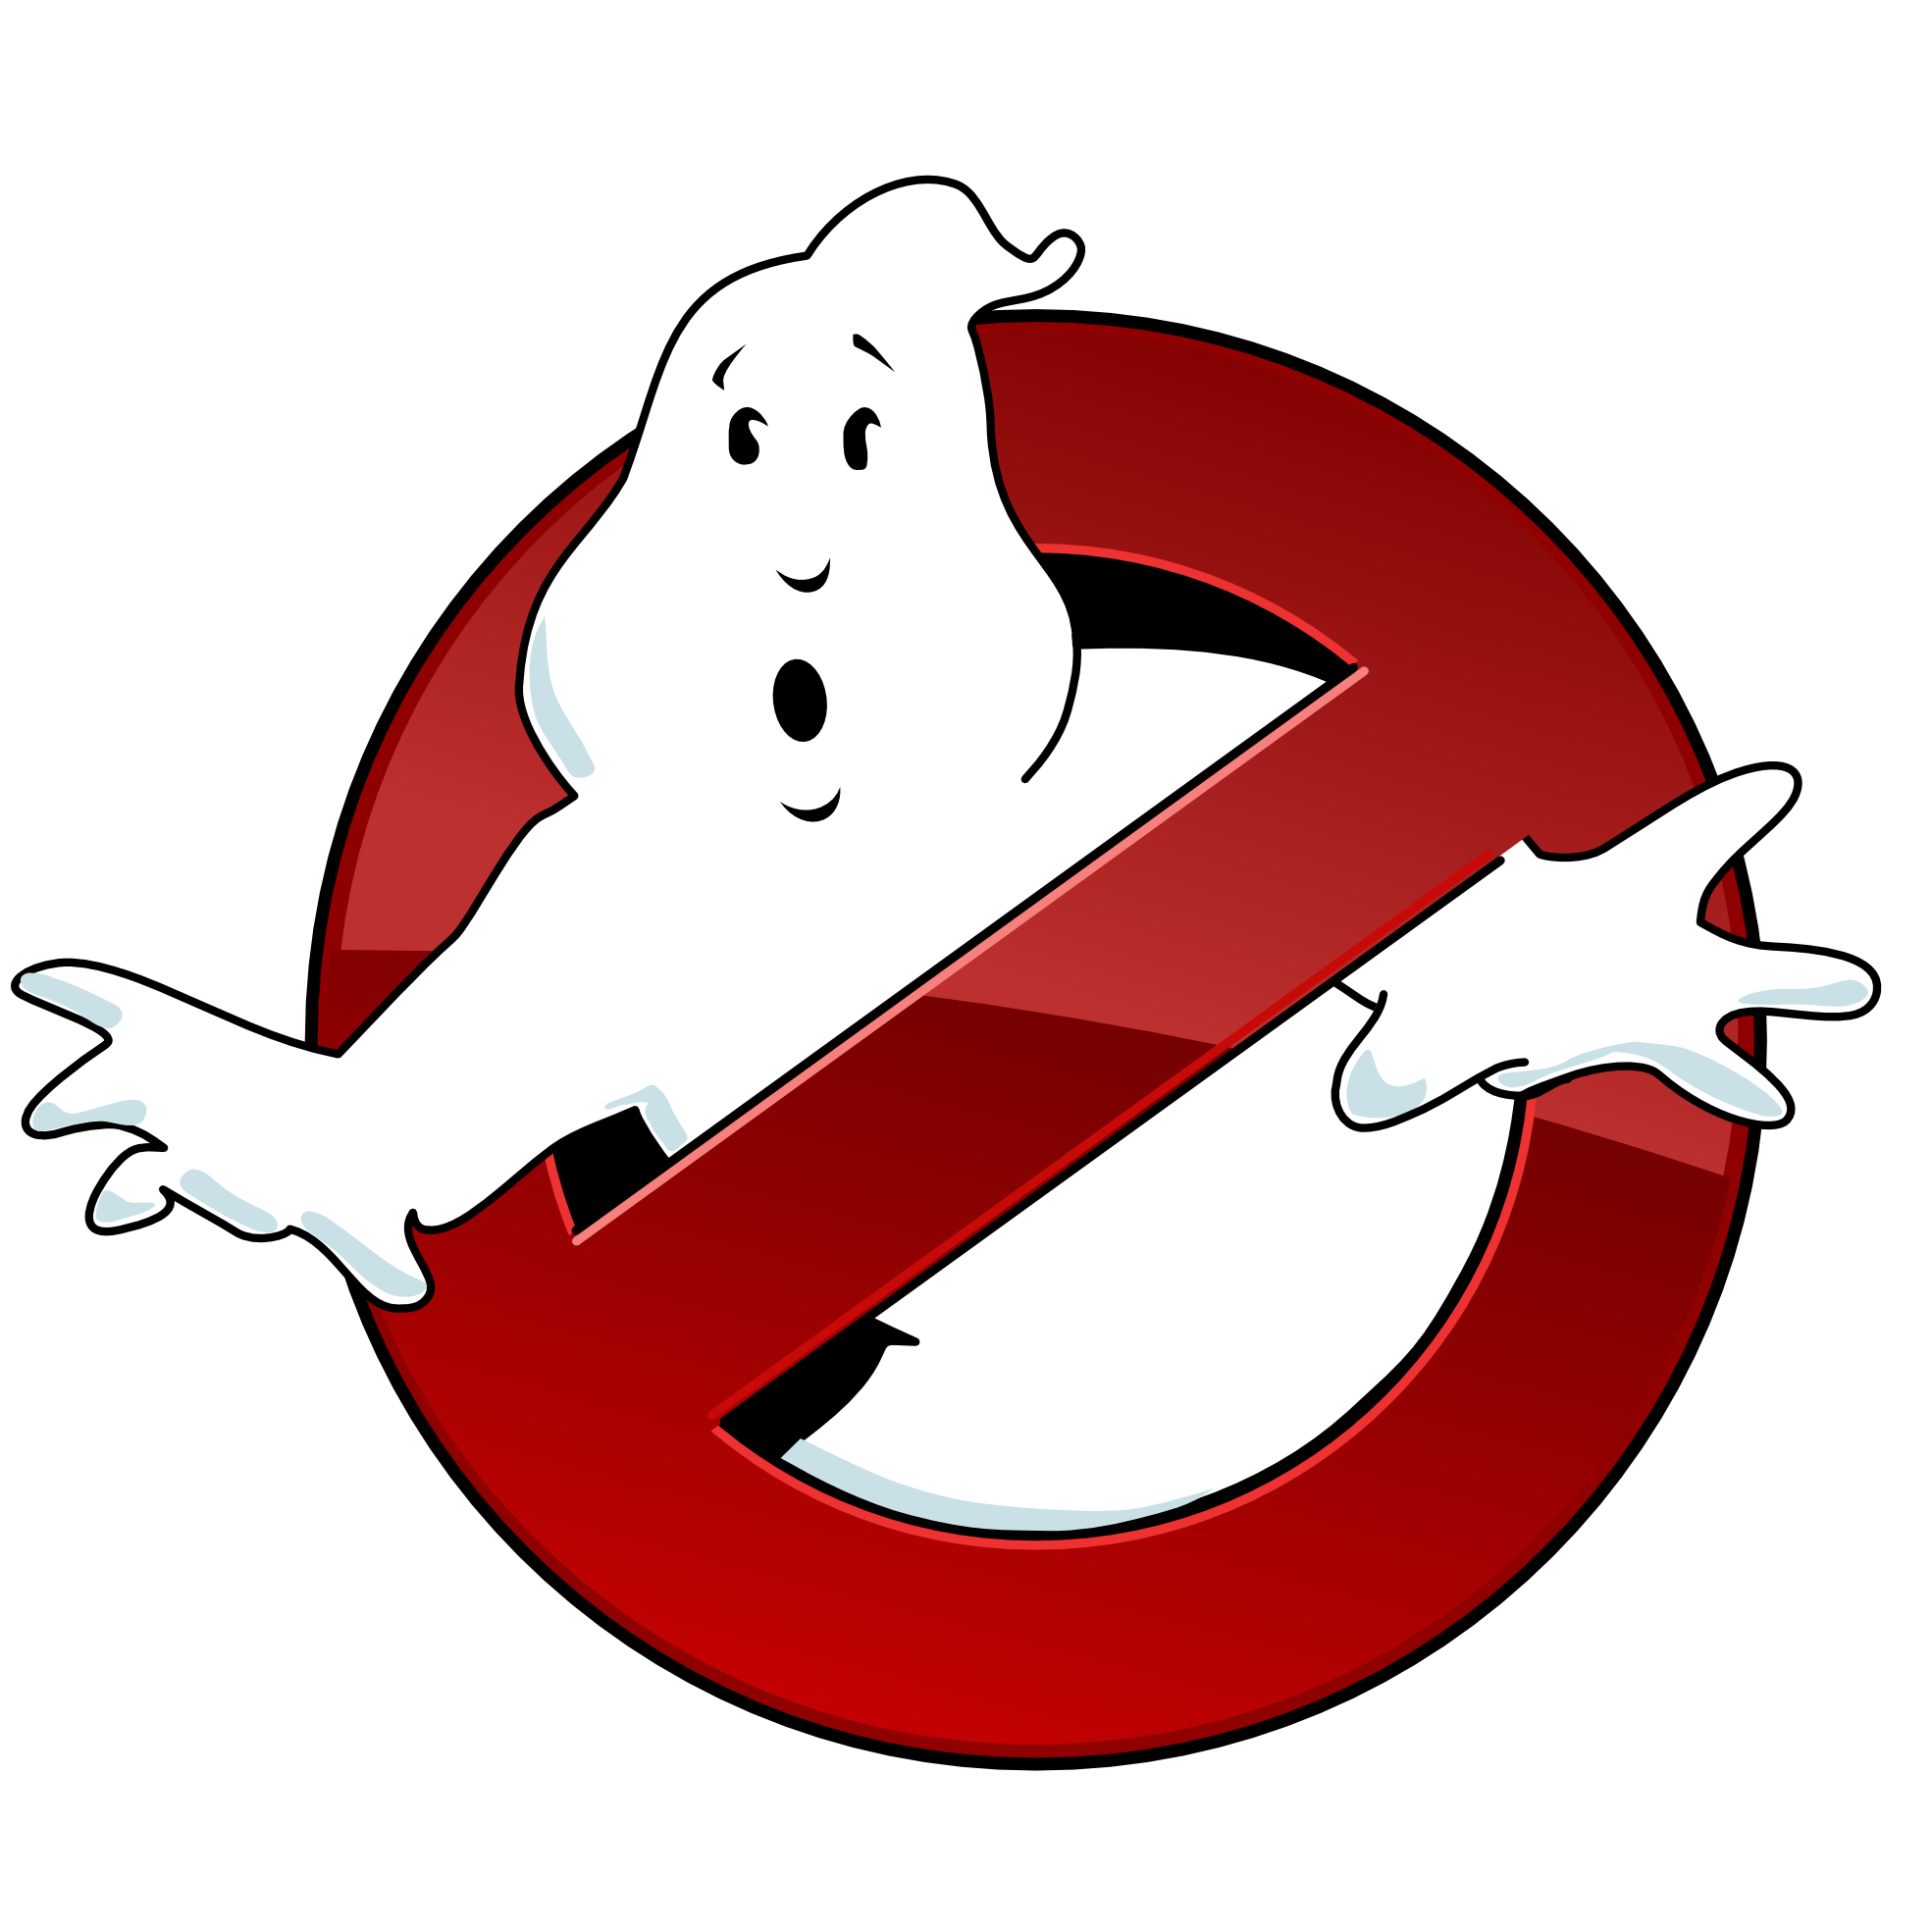 Halloween ghost png. Free icons and backgrounds